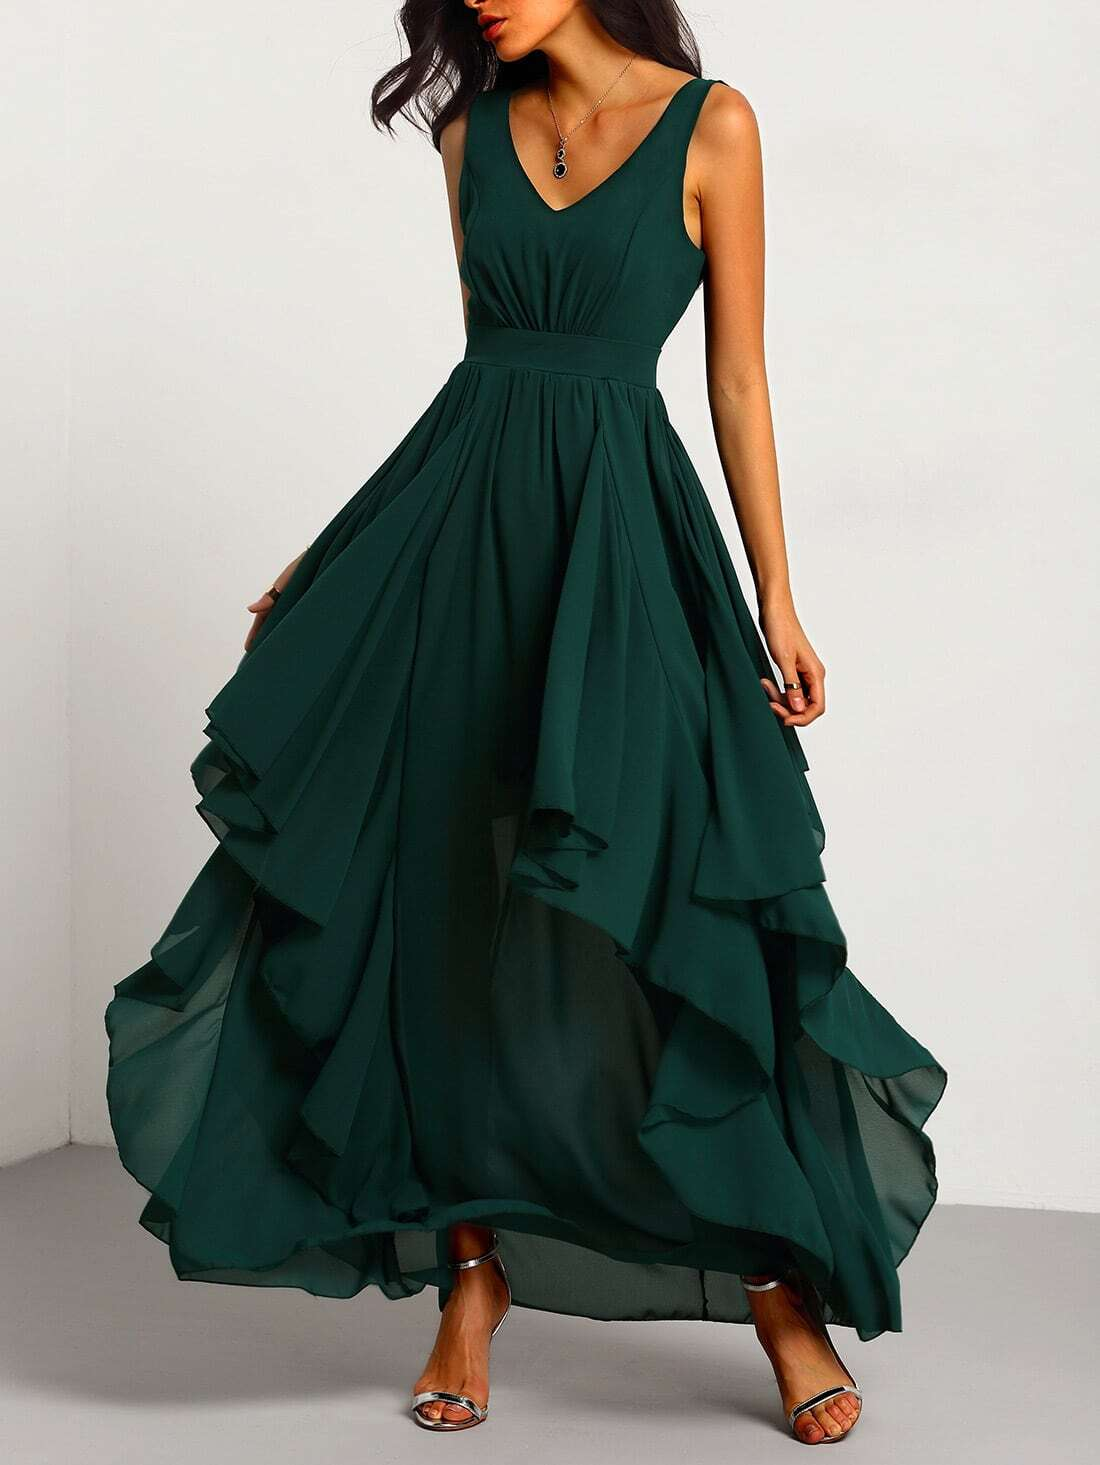 Find great deals on eBay for deep green dress. Shop with confidence.